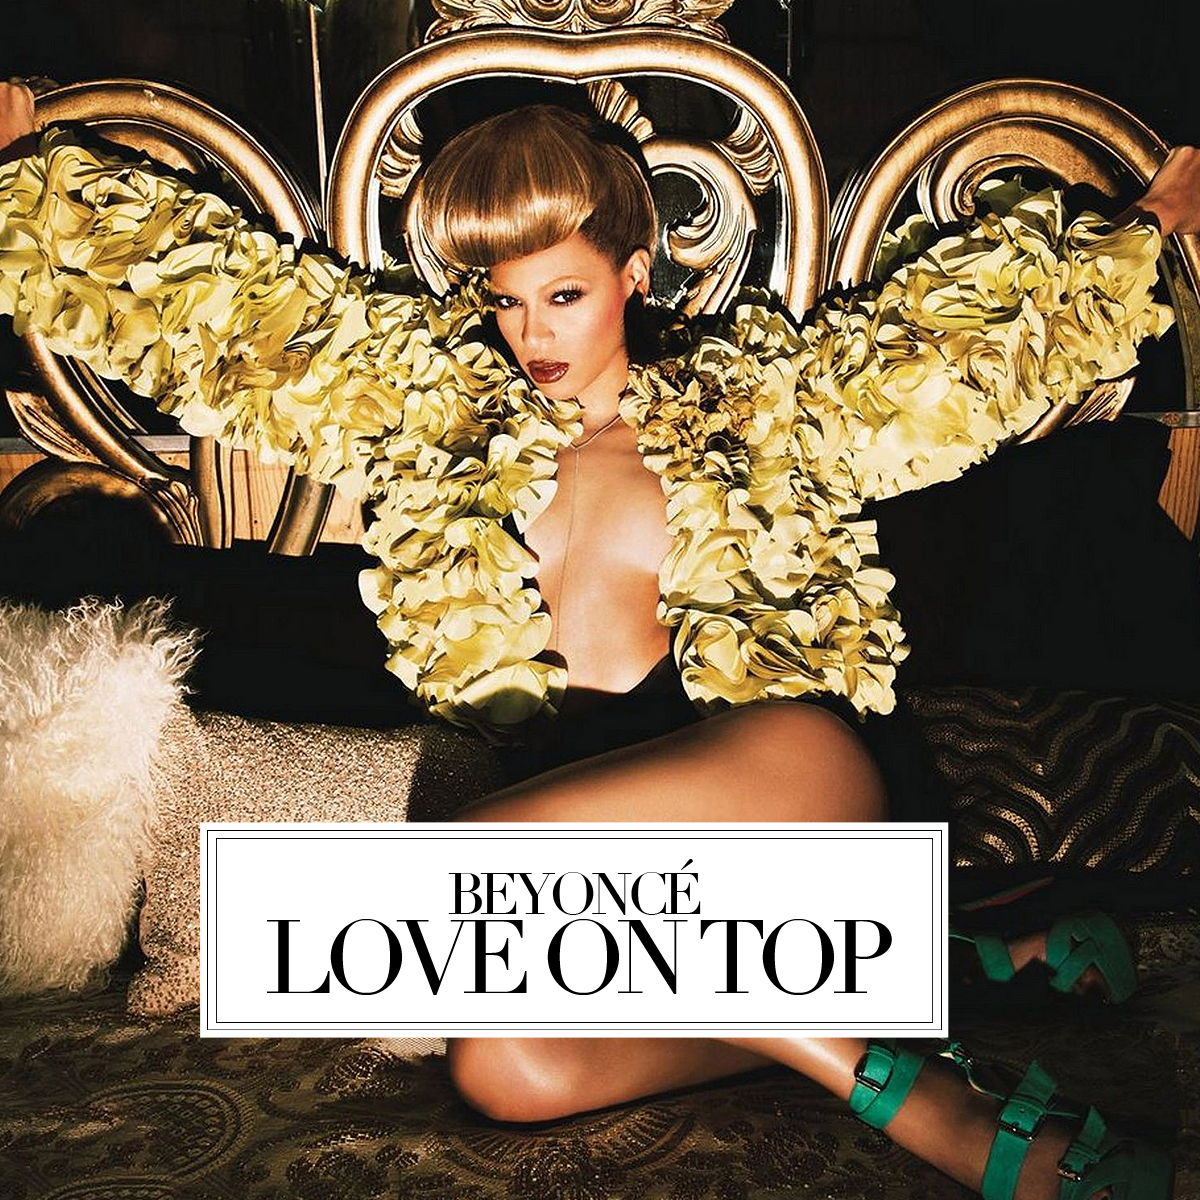 beyonce love on top